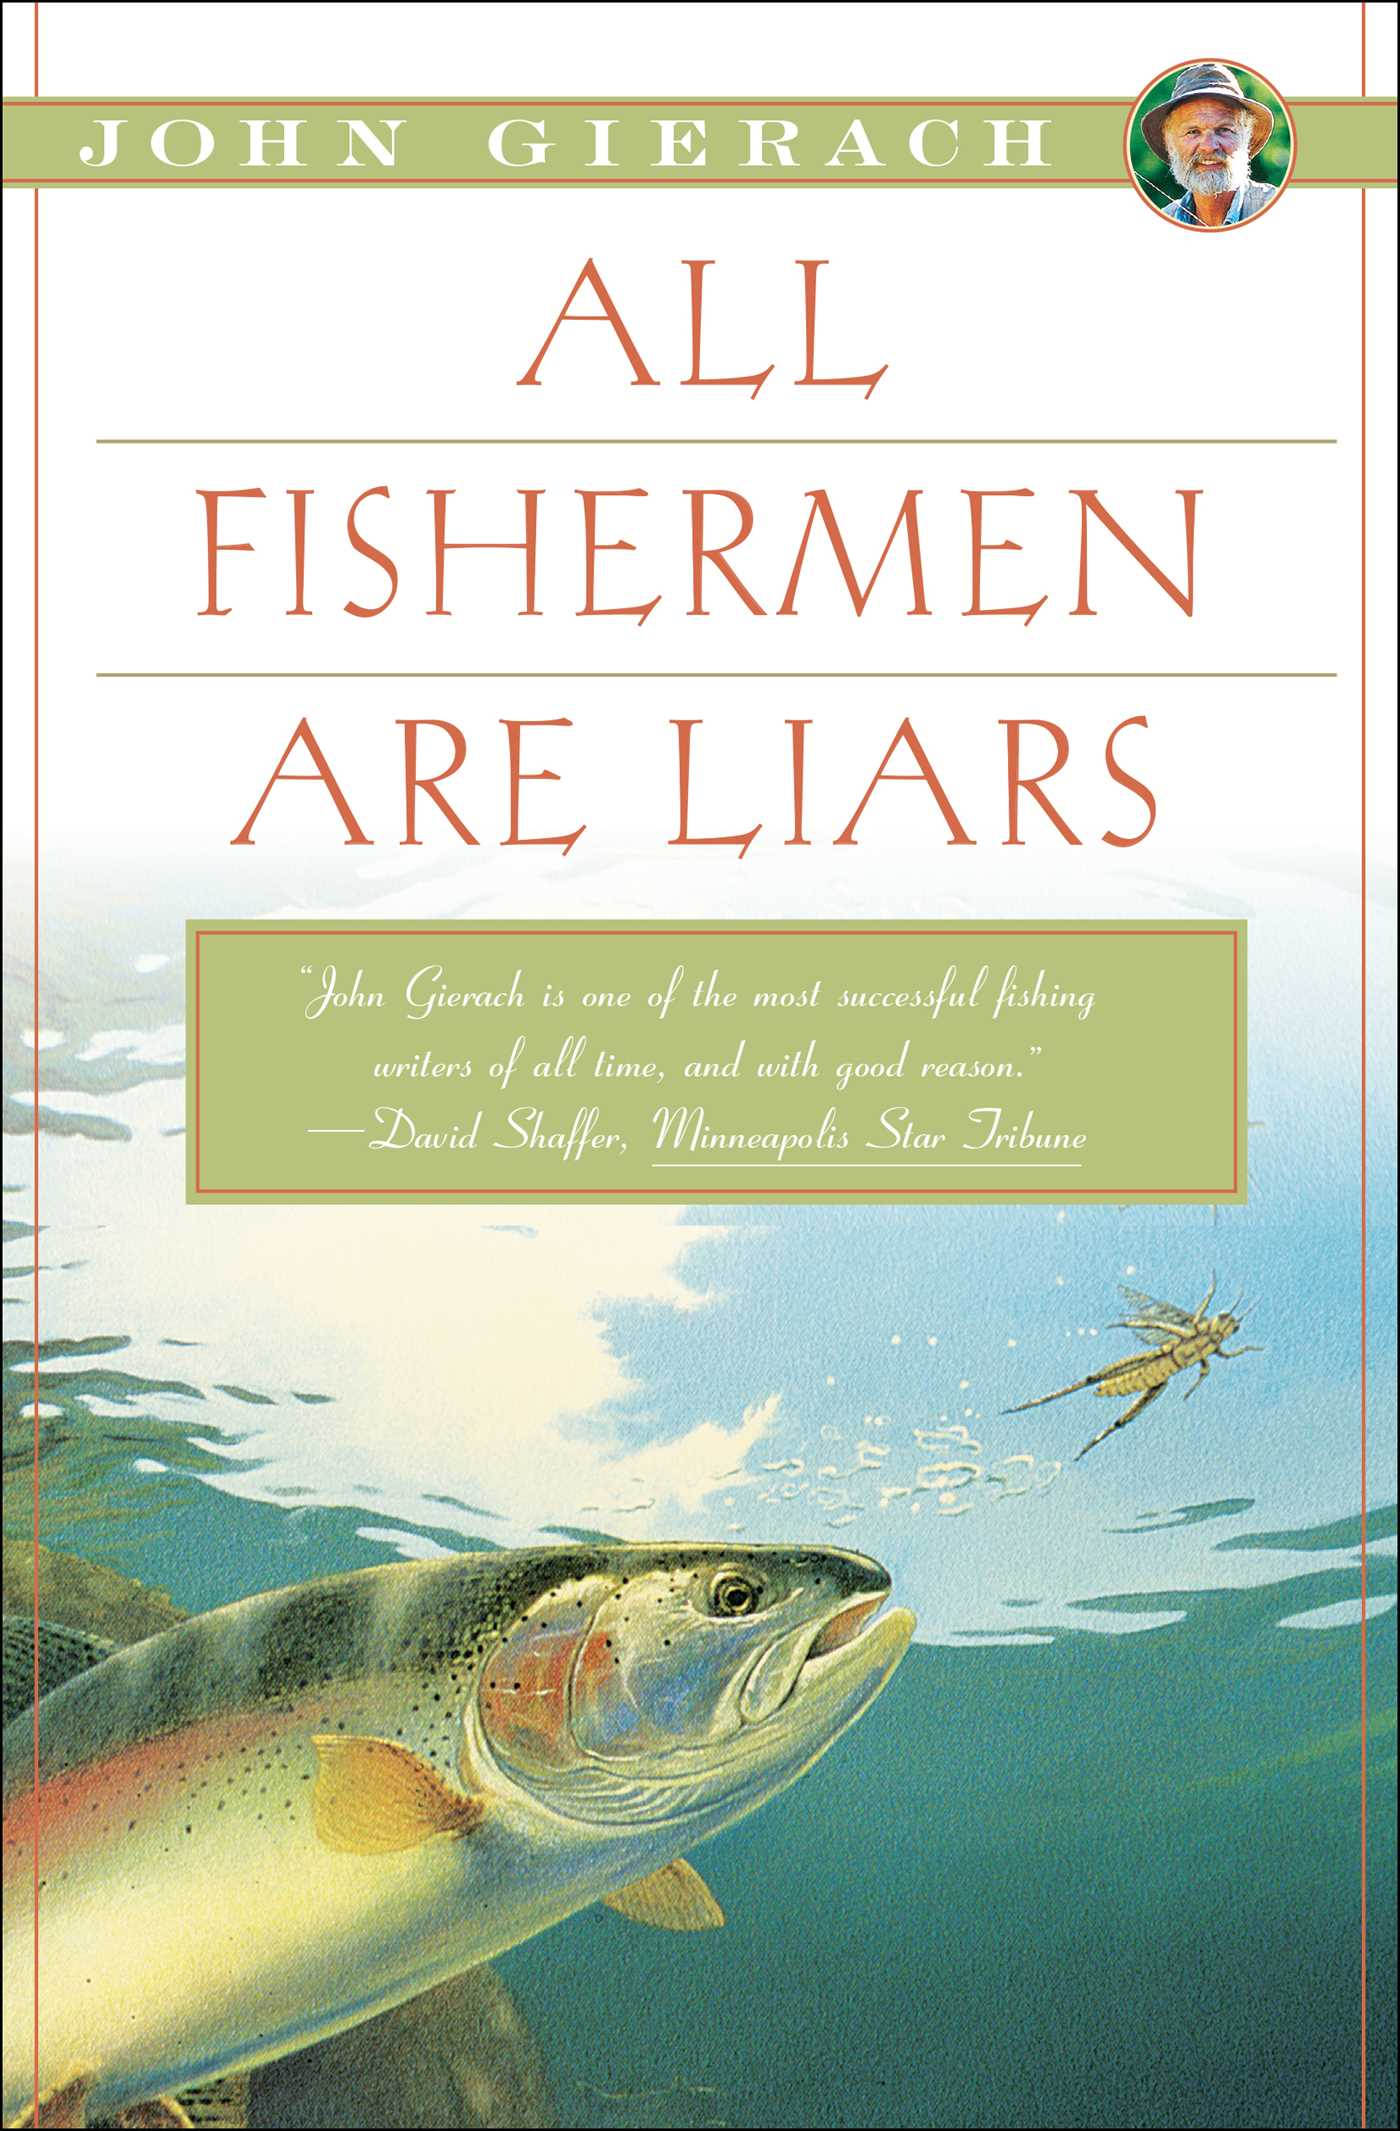 All-fishermen-are-liars-9781451618327_hr